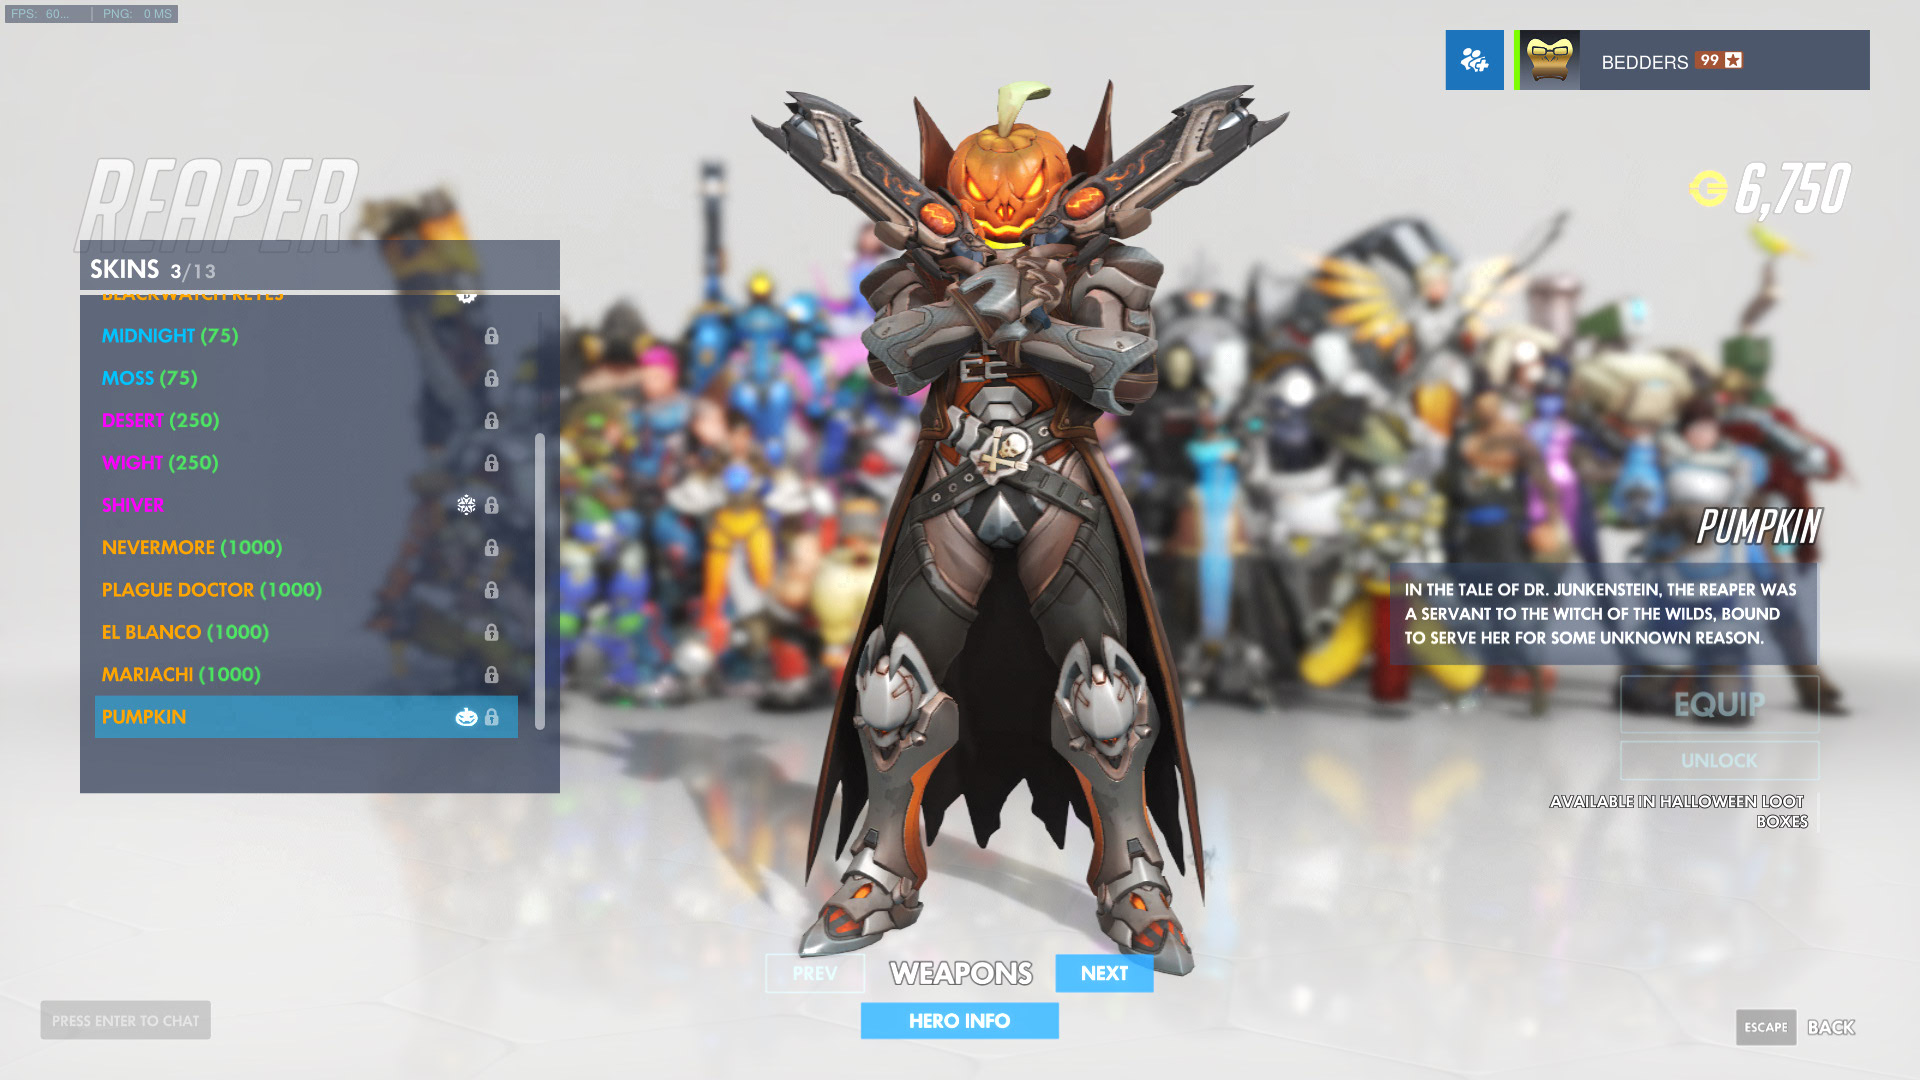 Reaper guide - 2017 - Overwatch | Metabomb